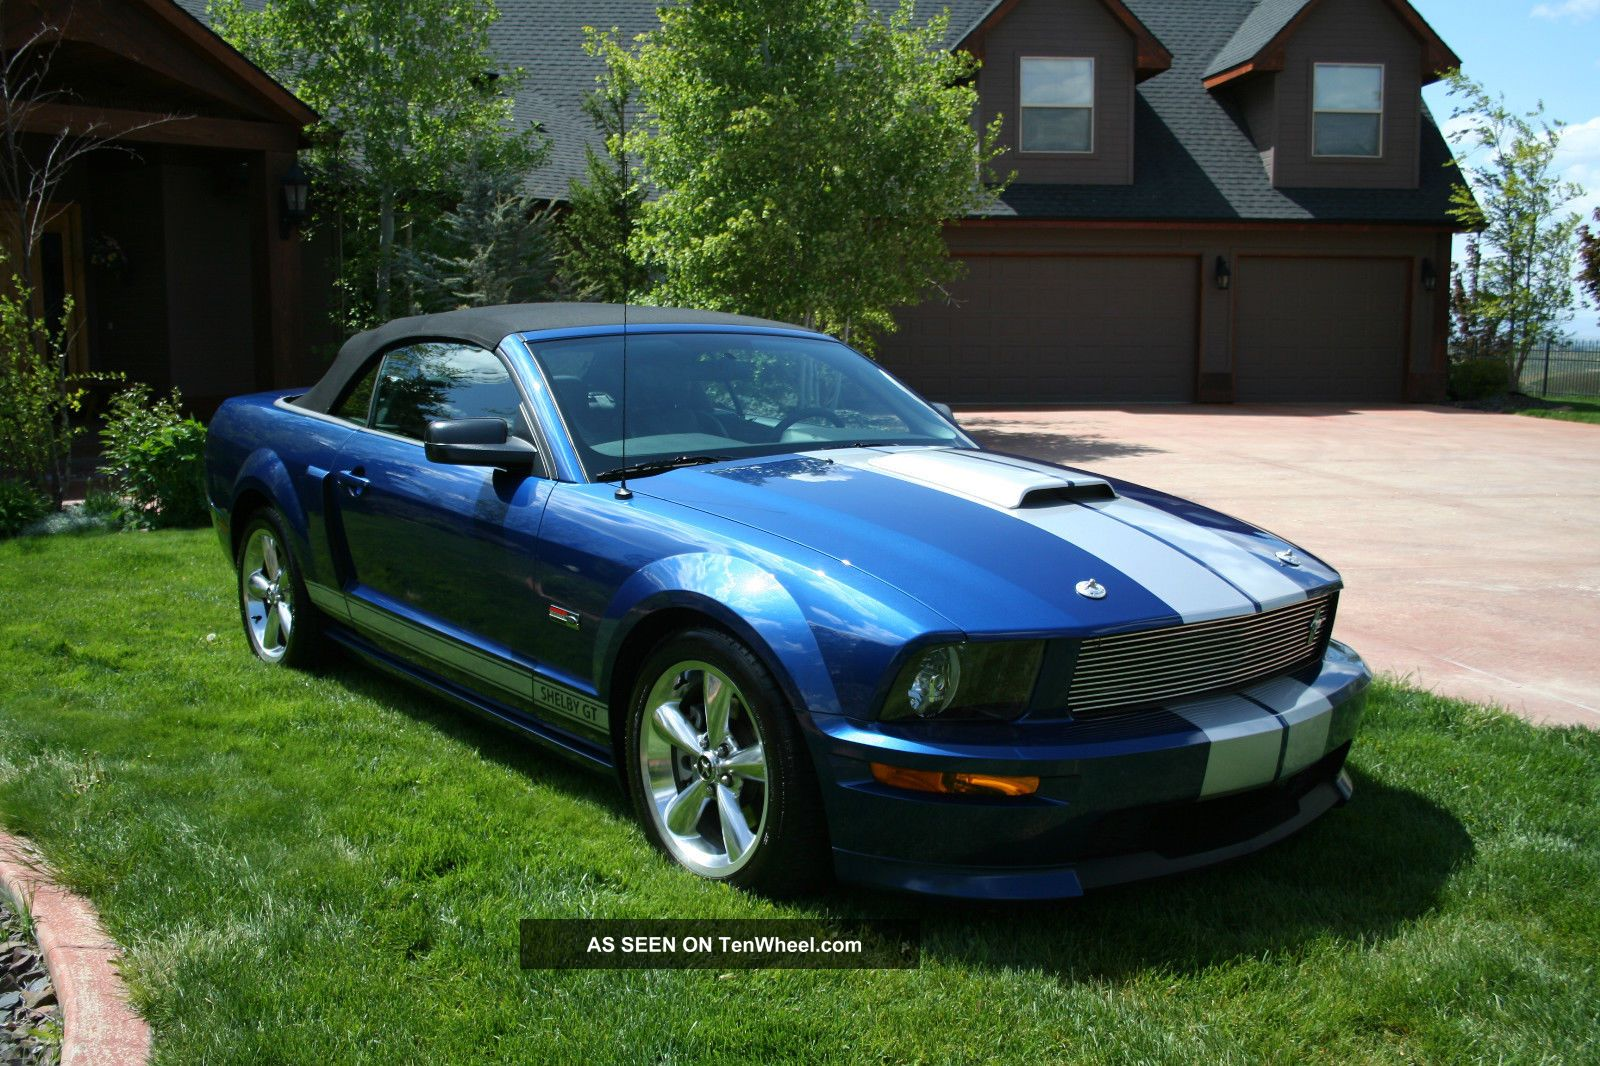 http://tenwheel.com/imgs/a/b/v/t/g/2008_ford_shelby_gt_convertible_supercharged_1_lgw.jpg